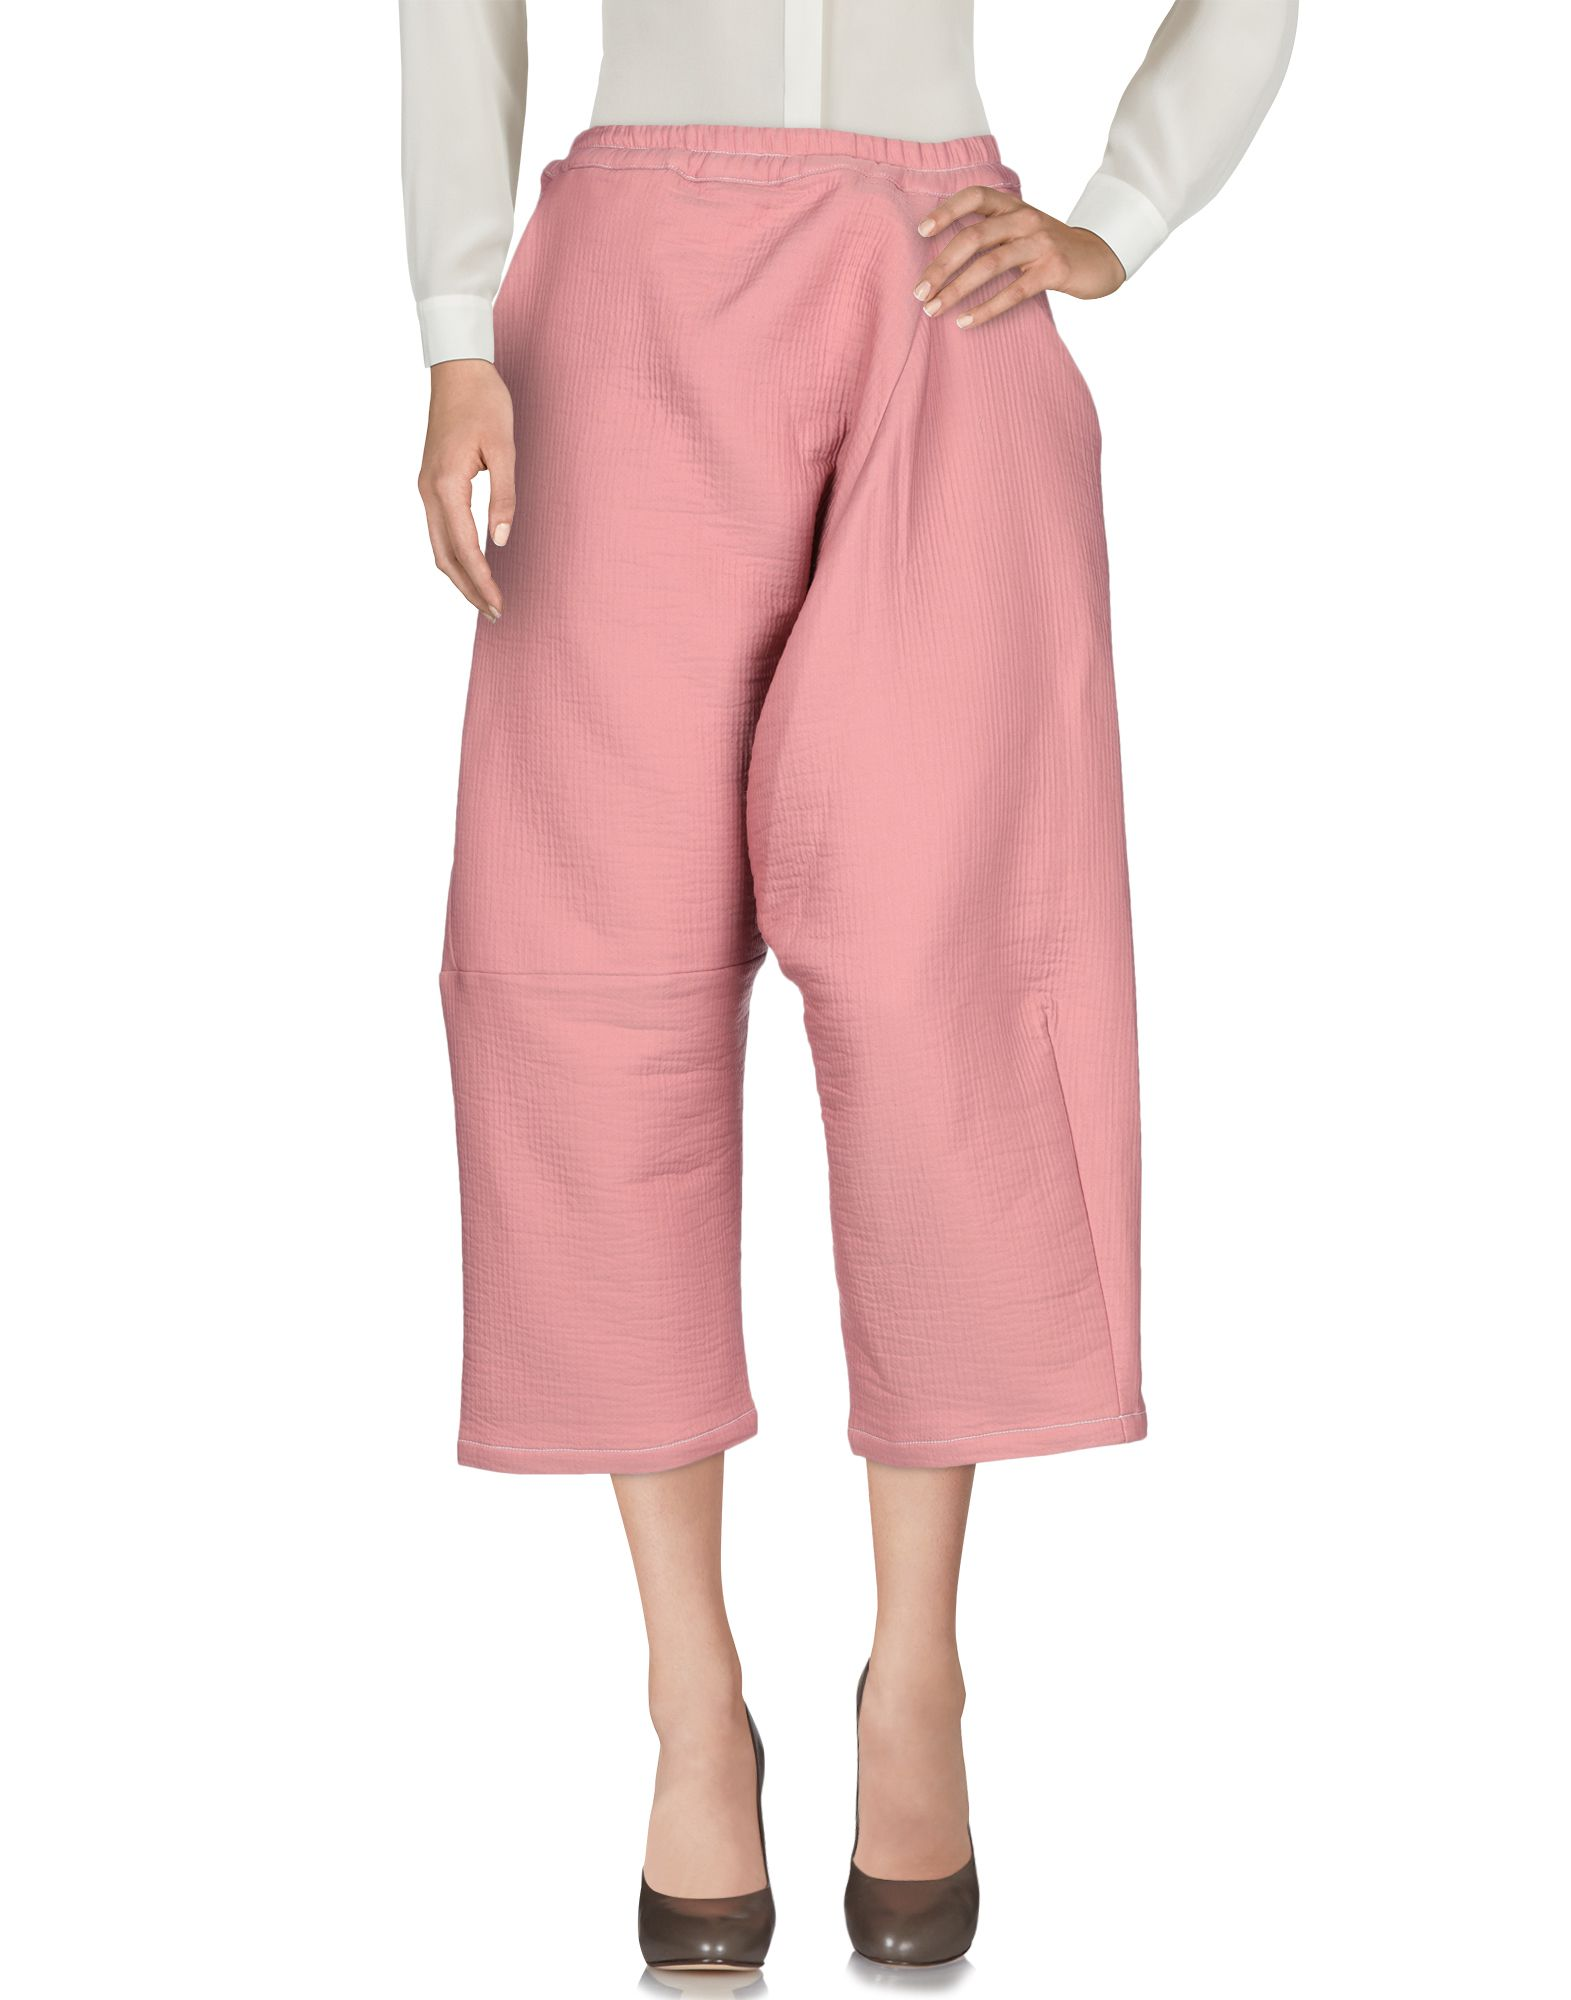 ANNTIAN Casual Pants in Pastel Pink